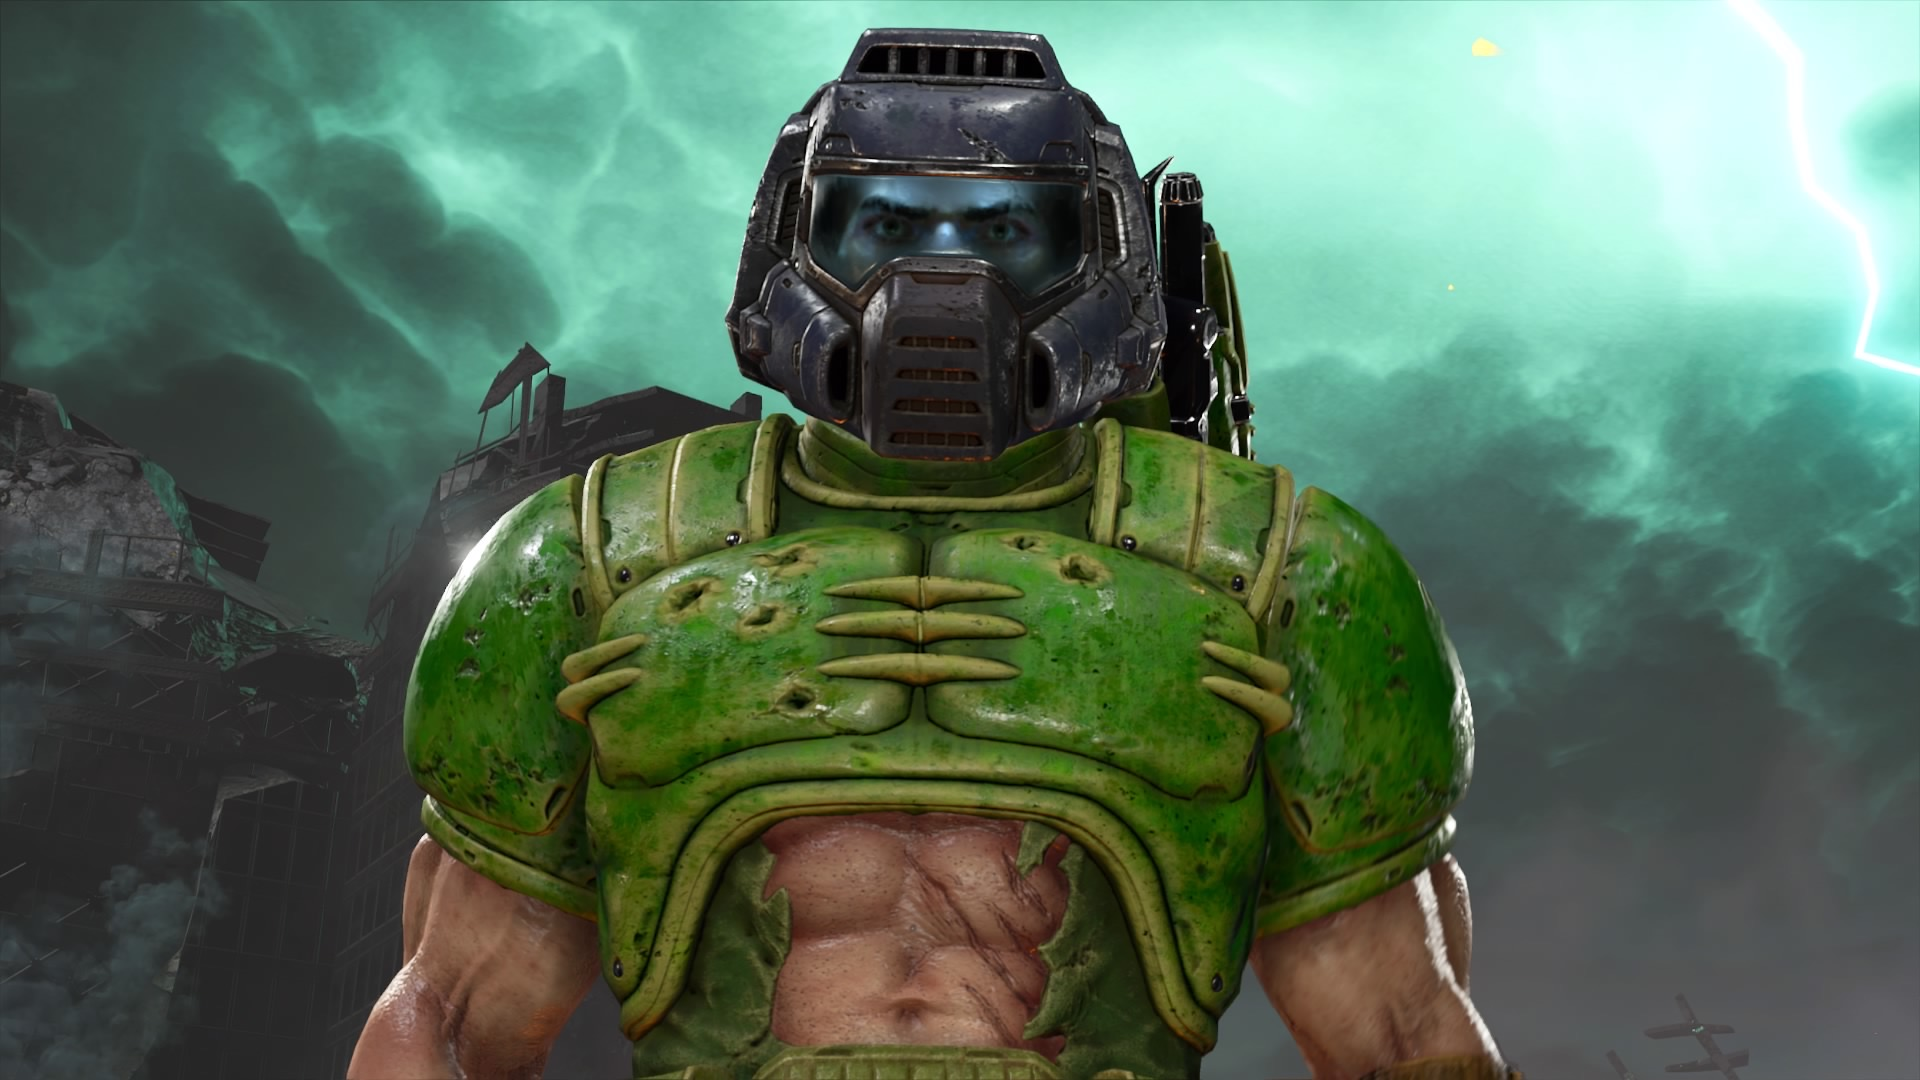 What Does Doomguy Keep On The Desktop And Where Does The Fallout